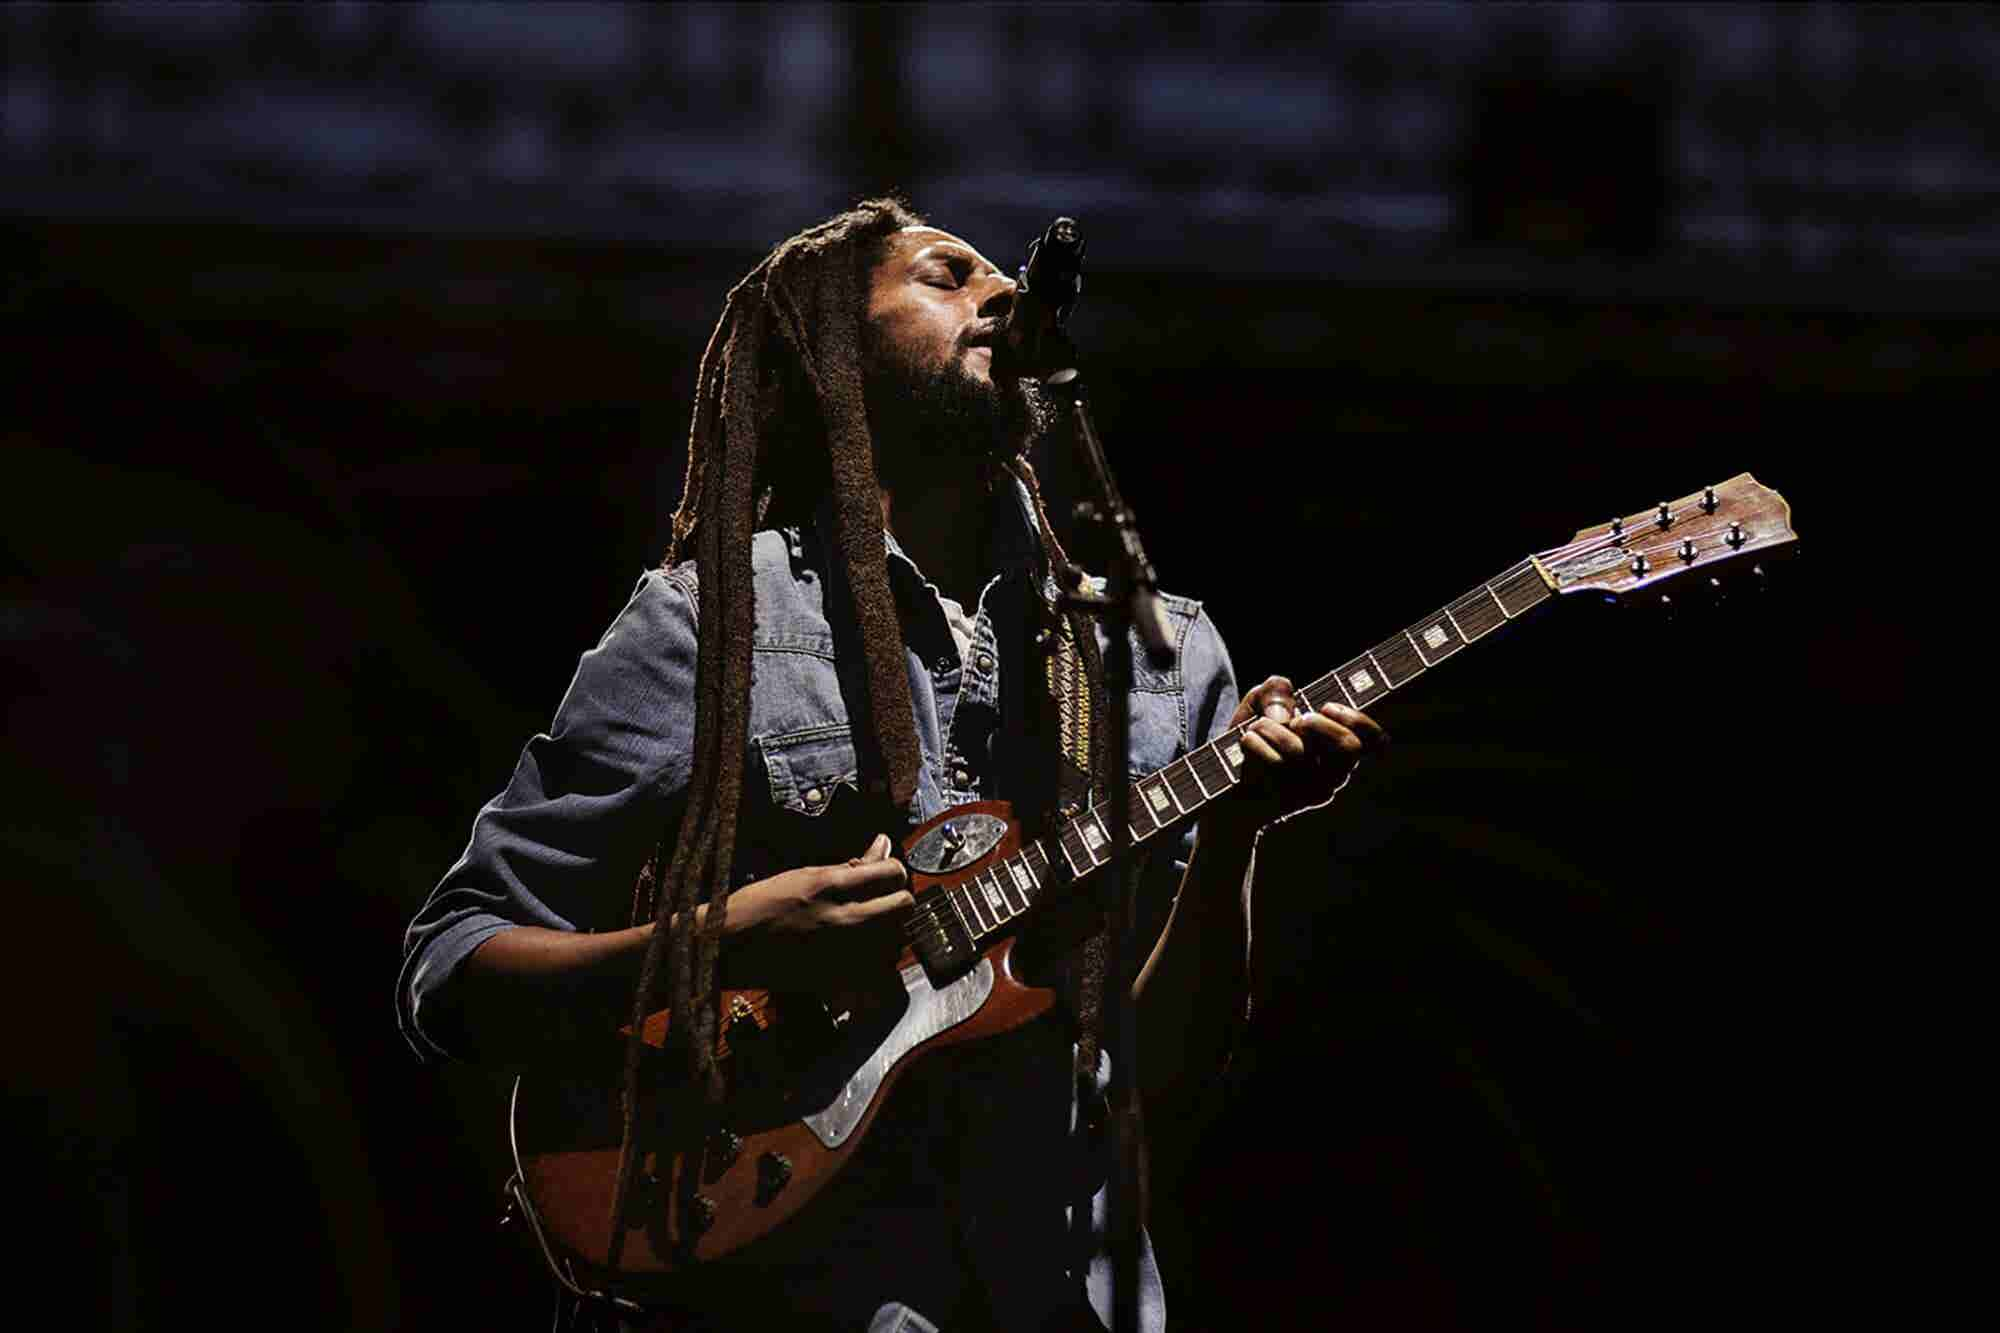 Julian Marley Thinks Cannabis Should Be Free